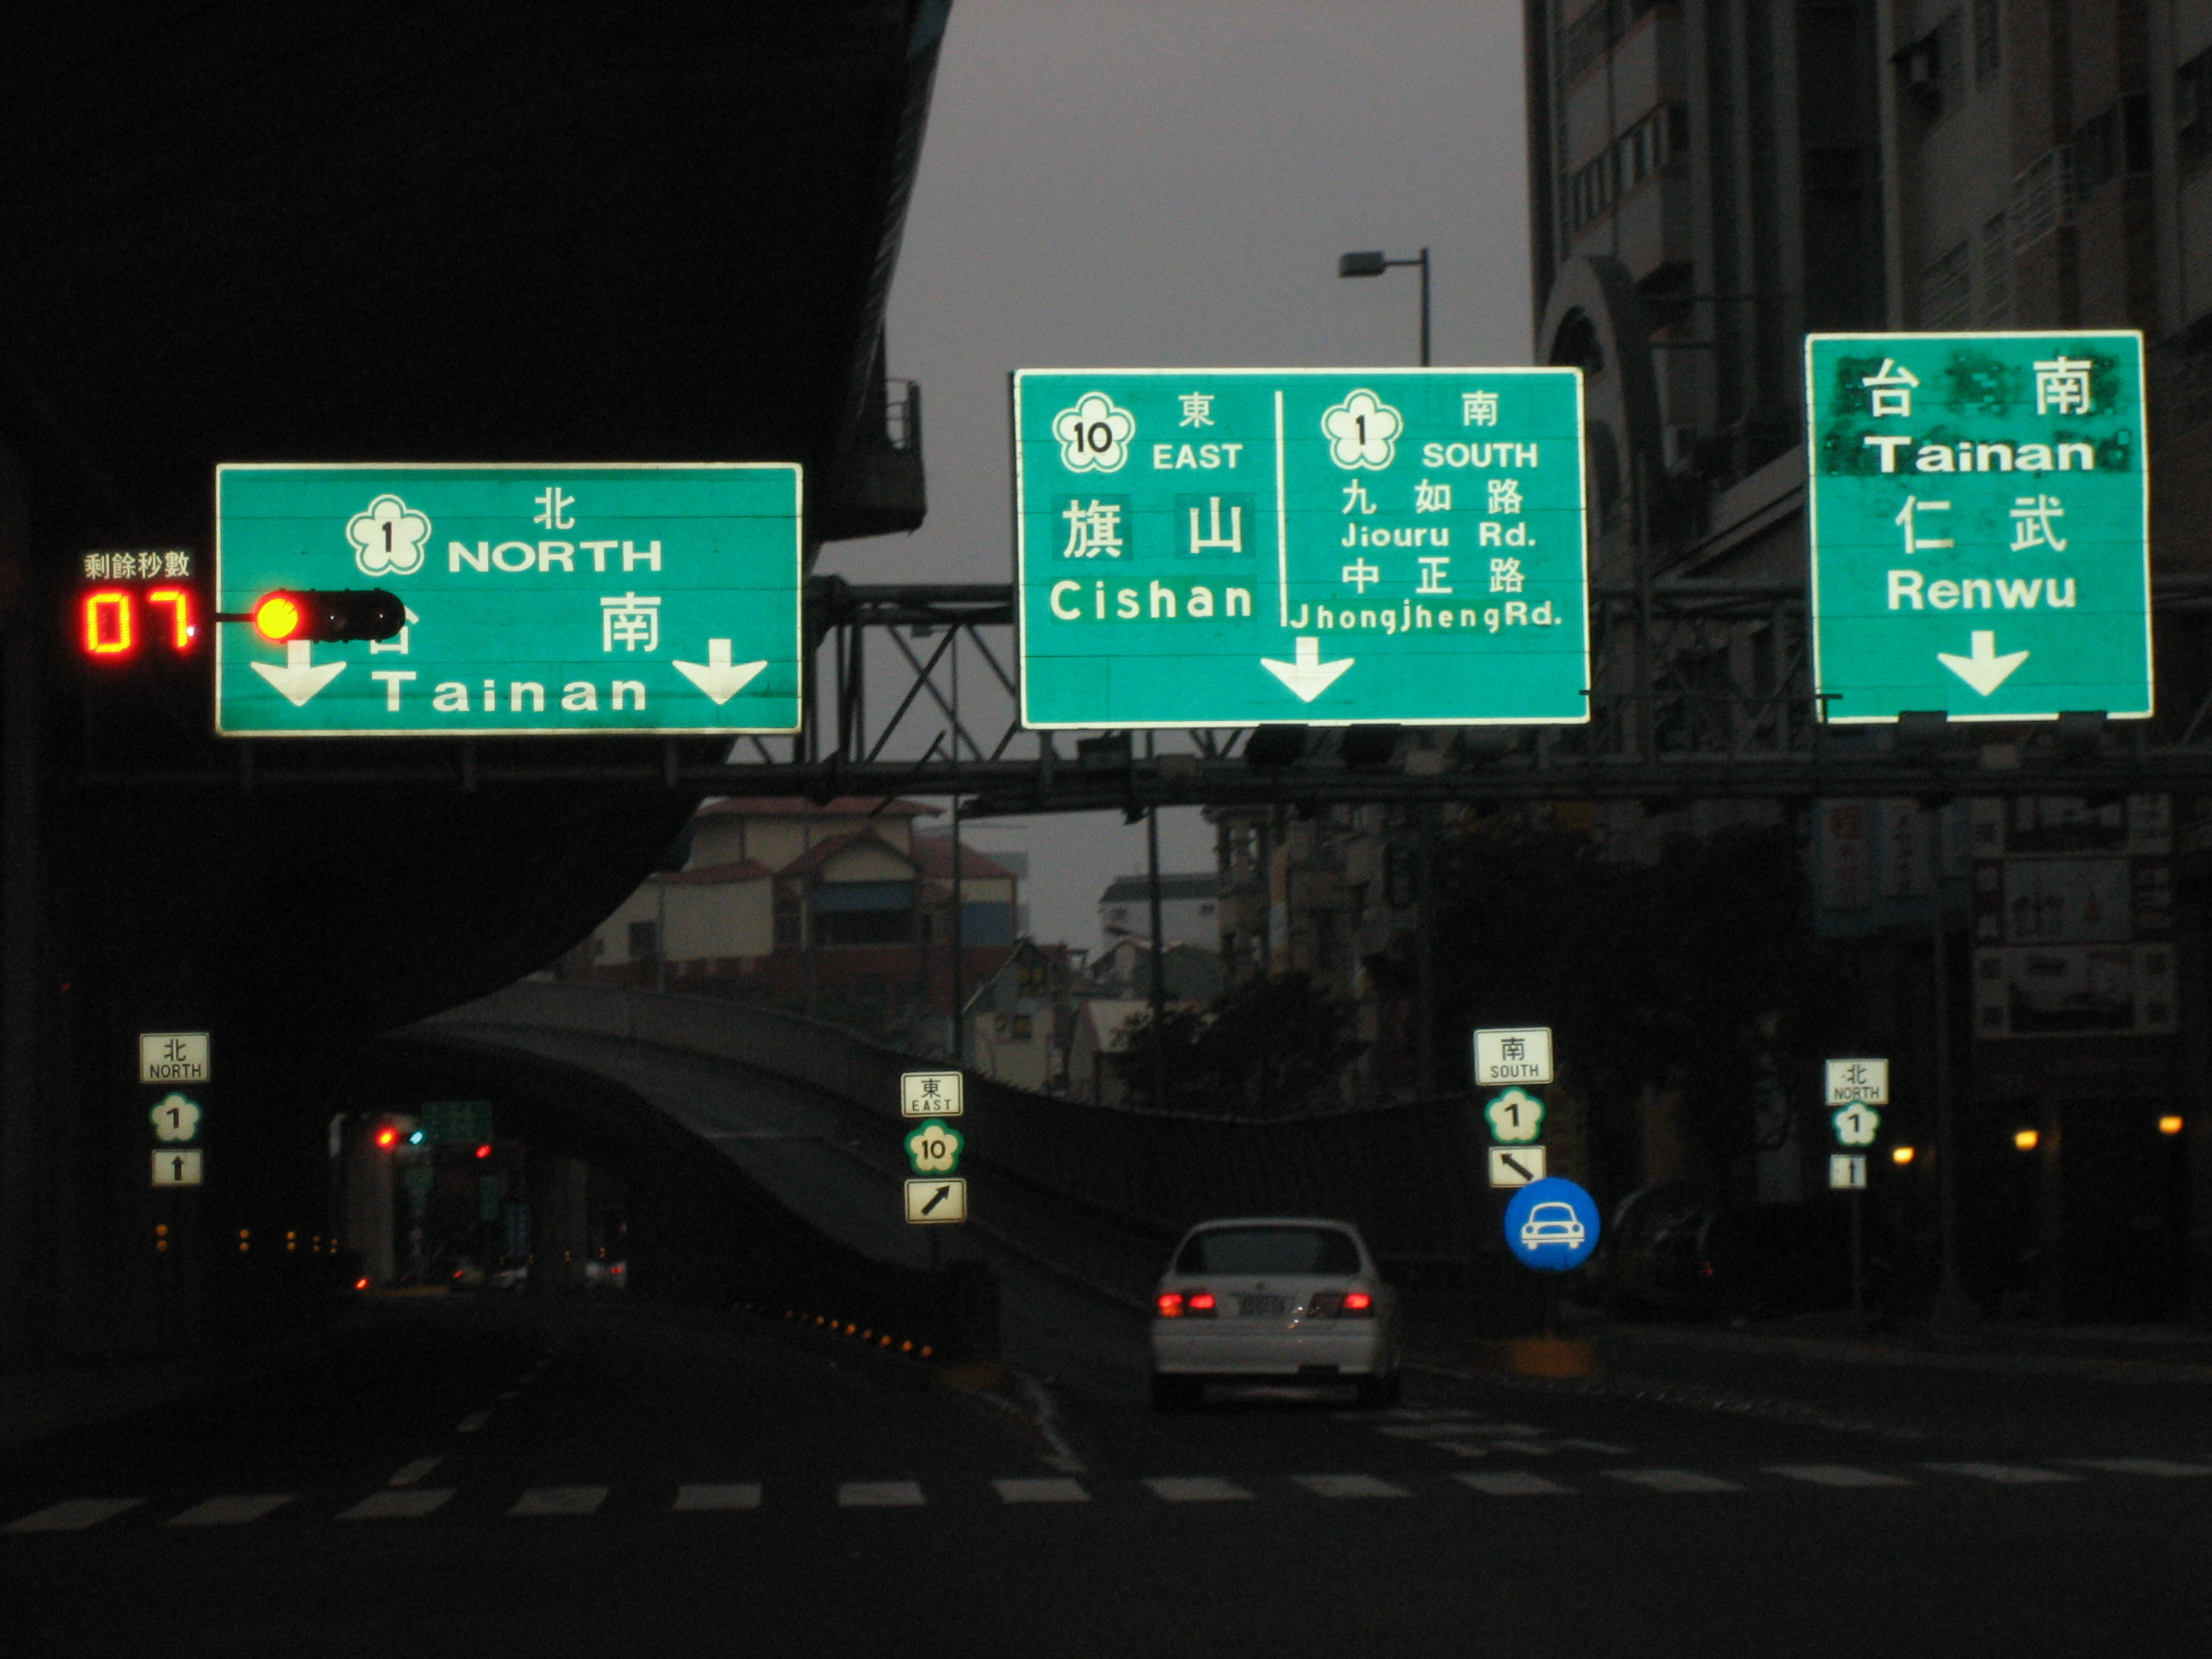 Highway to Tainan